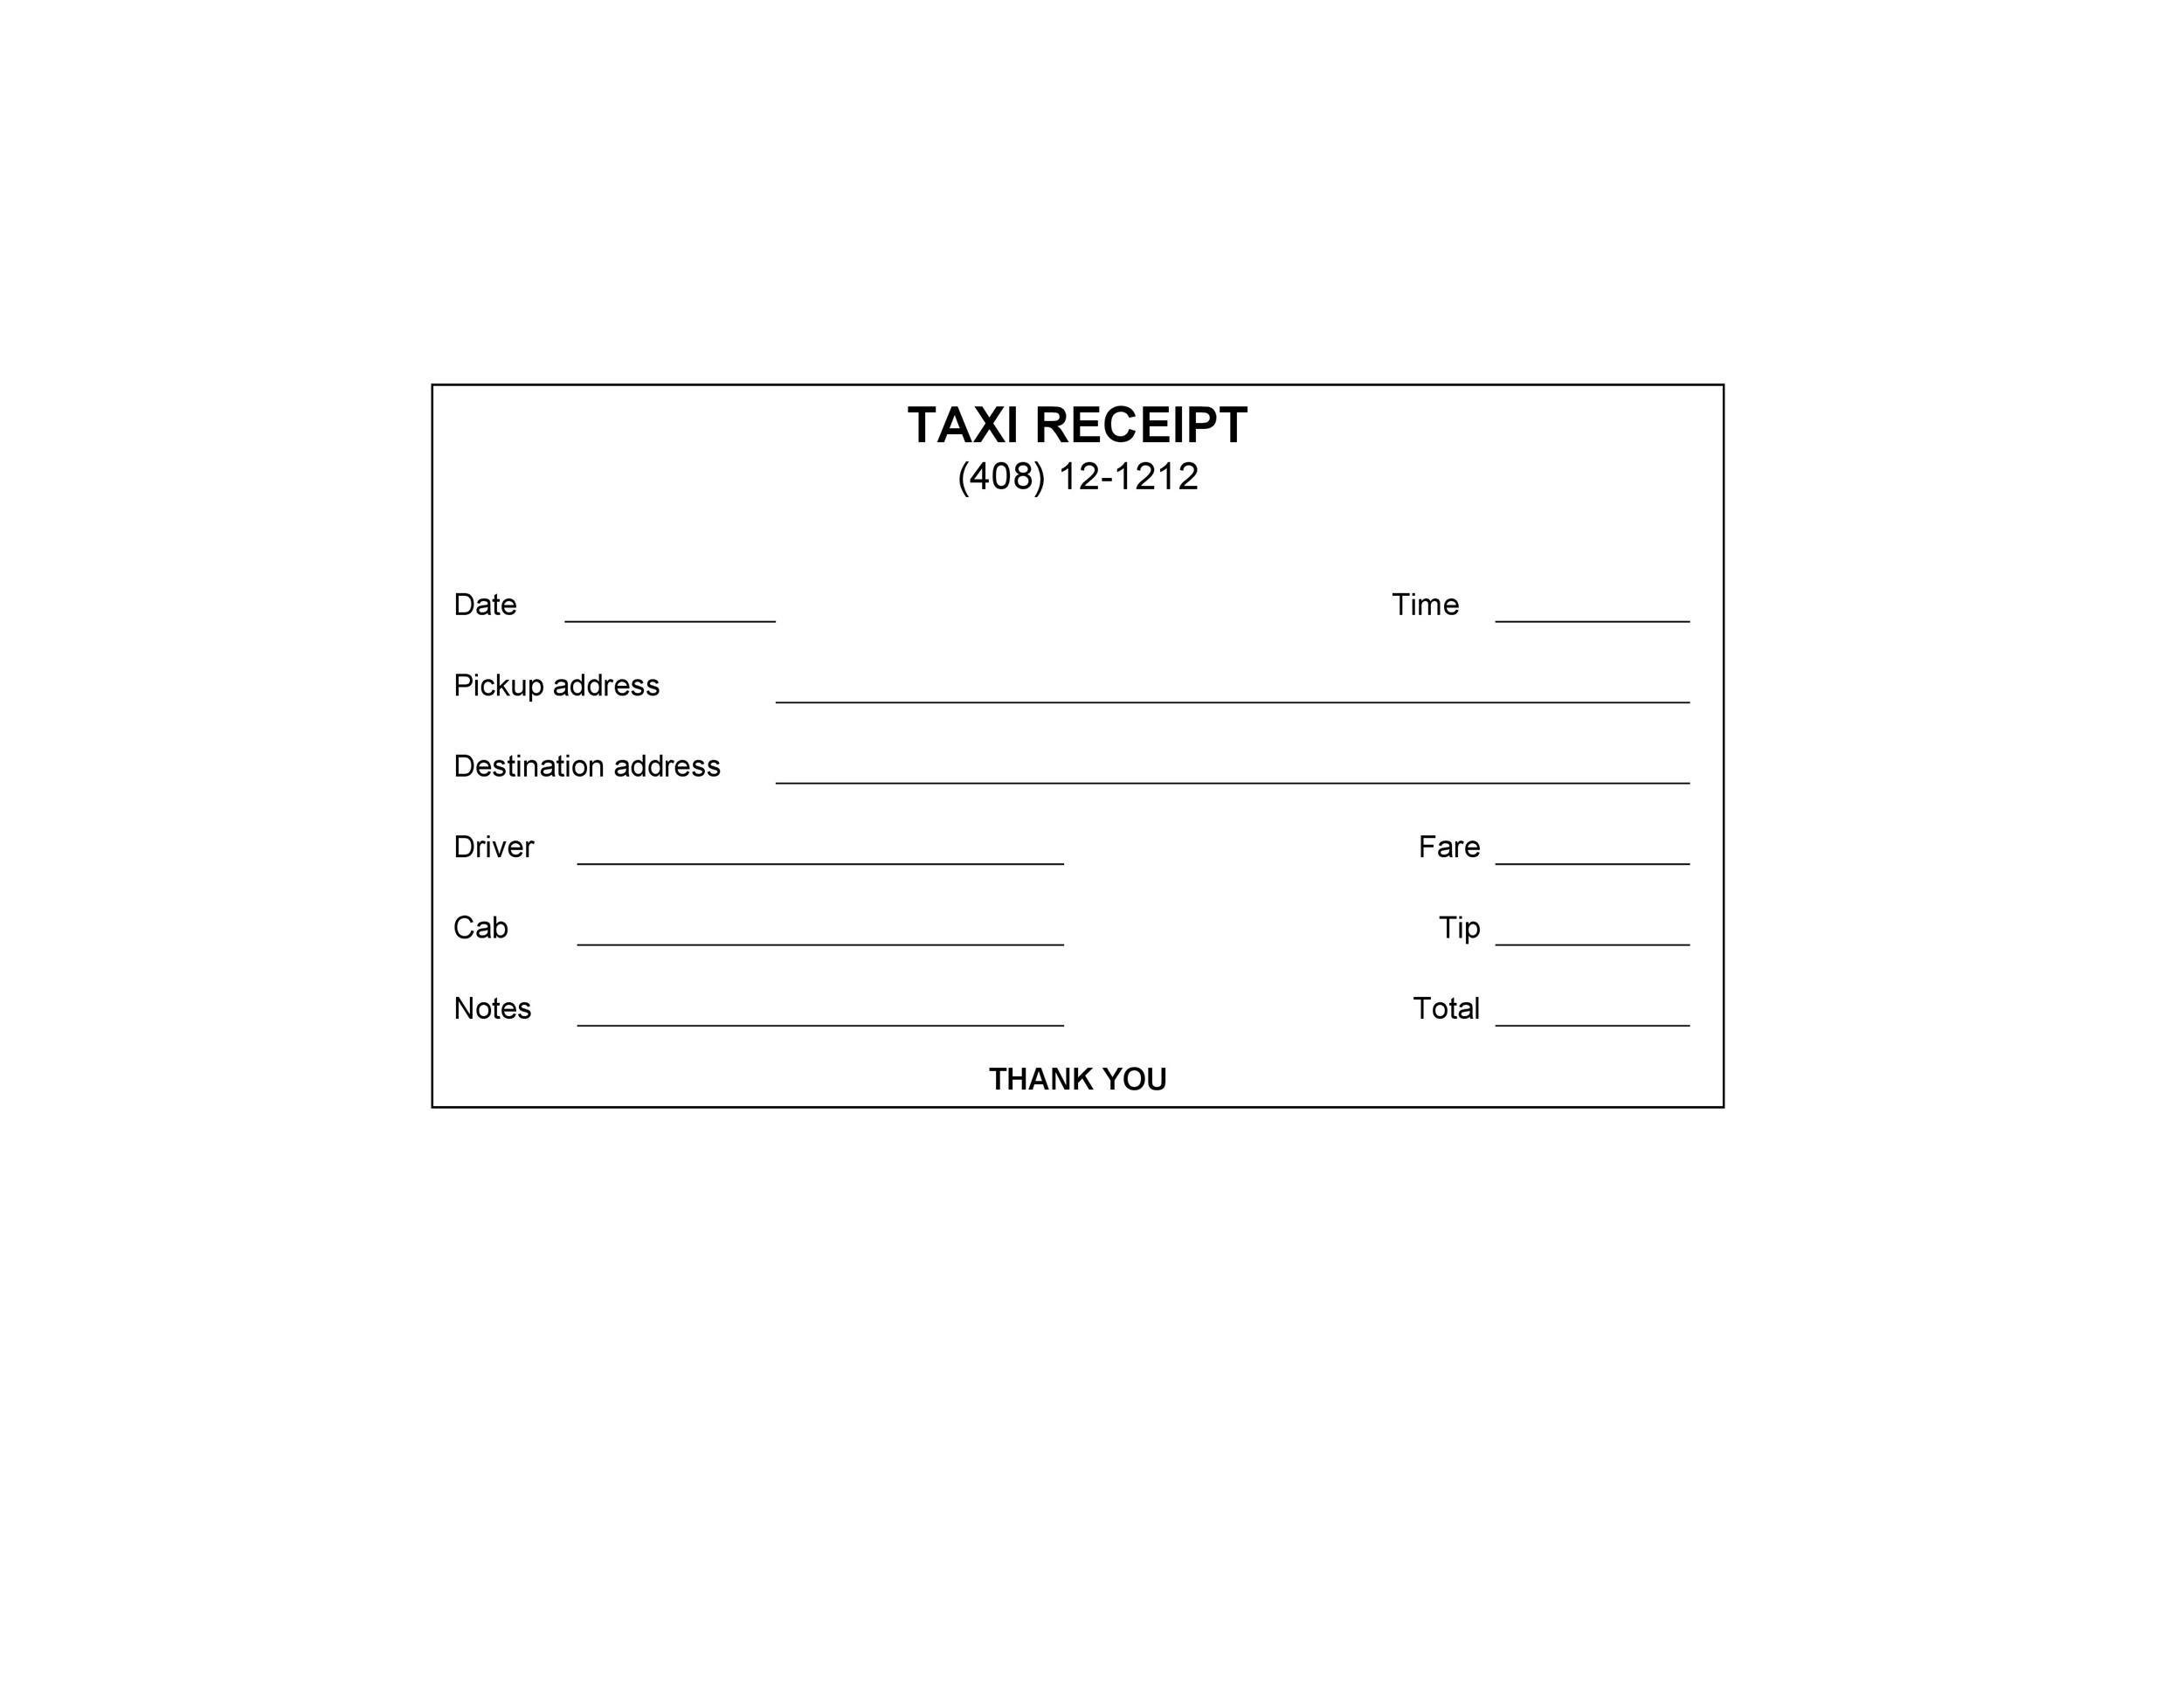 50 Free Receipt Templates Cash Sales Donation Taxi – Reciept Templates